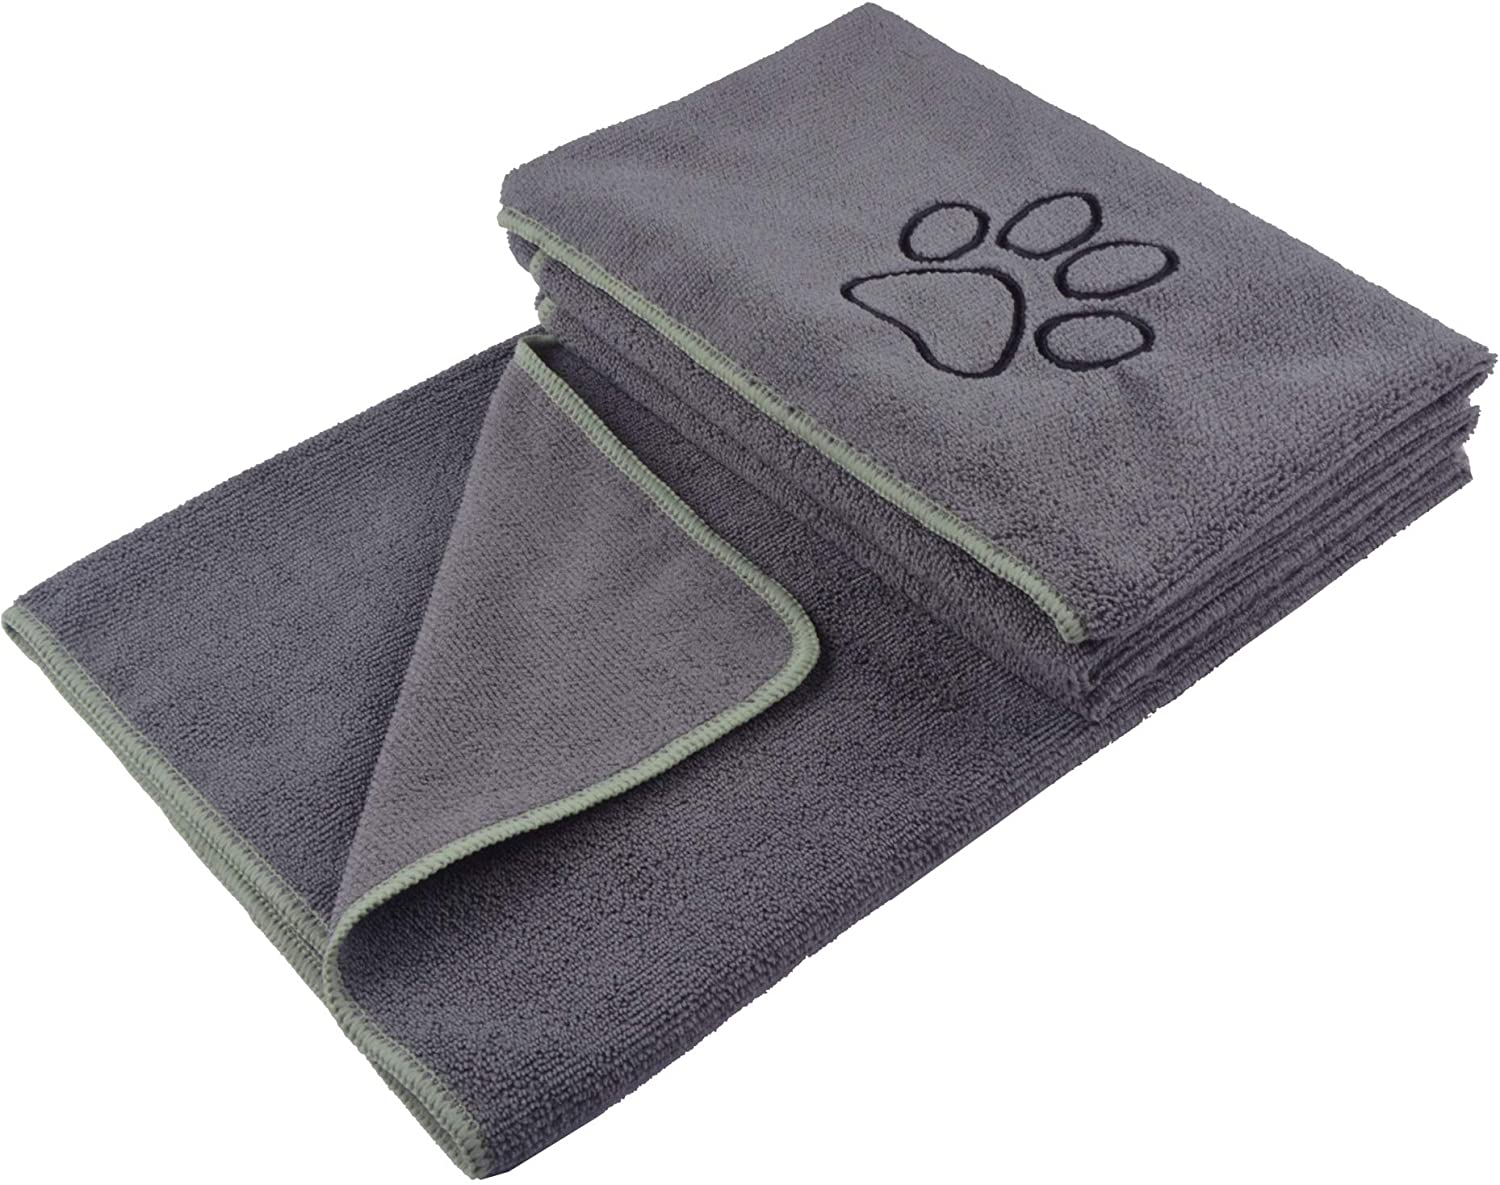 KinHwa Dog Towel Super Absorbent Pet Bath Towel Microfiber Dog Drying Towel for Small, Medium, Large Dogs and Cats